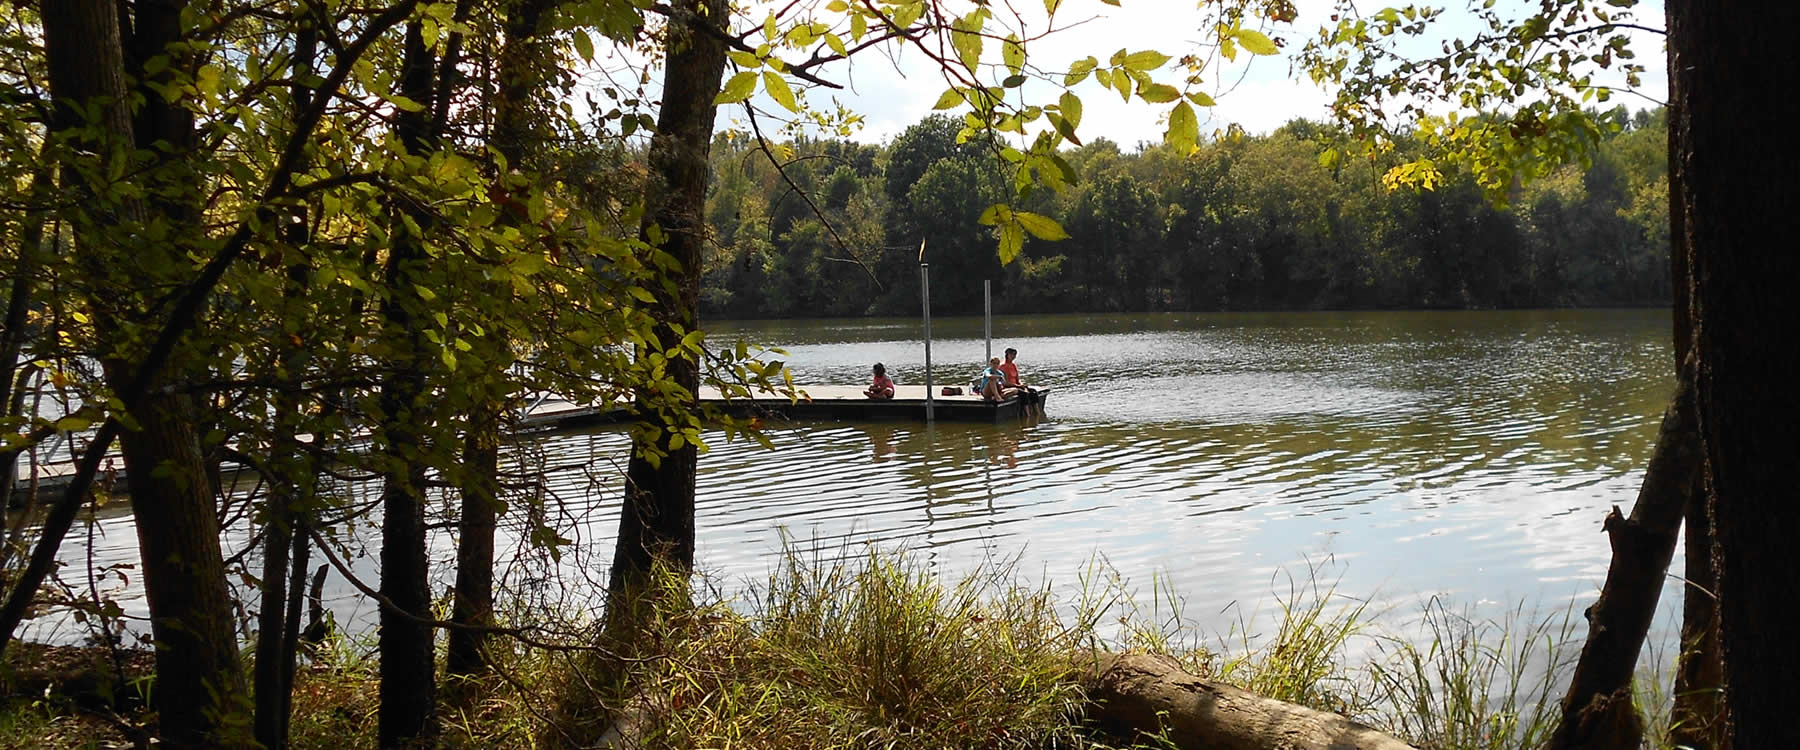 10 Campsites In Tennessee That Are Right On The Water